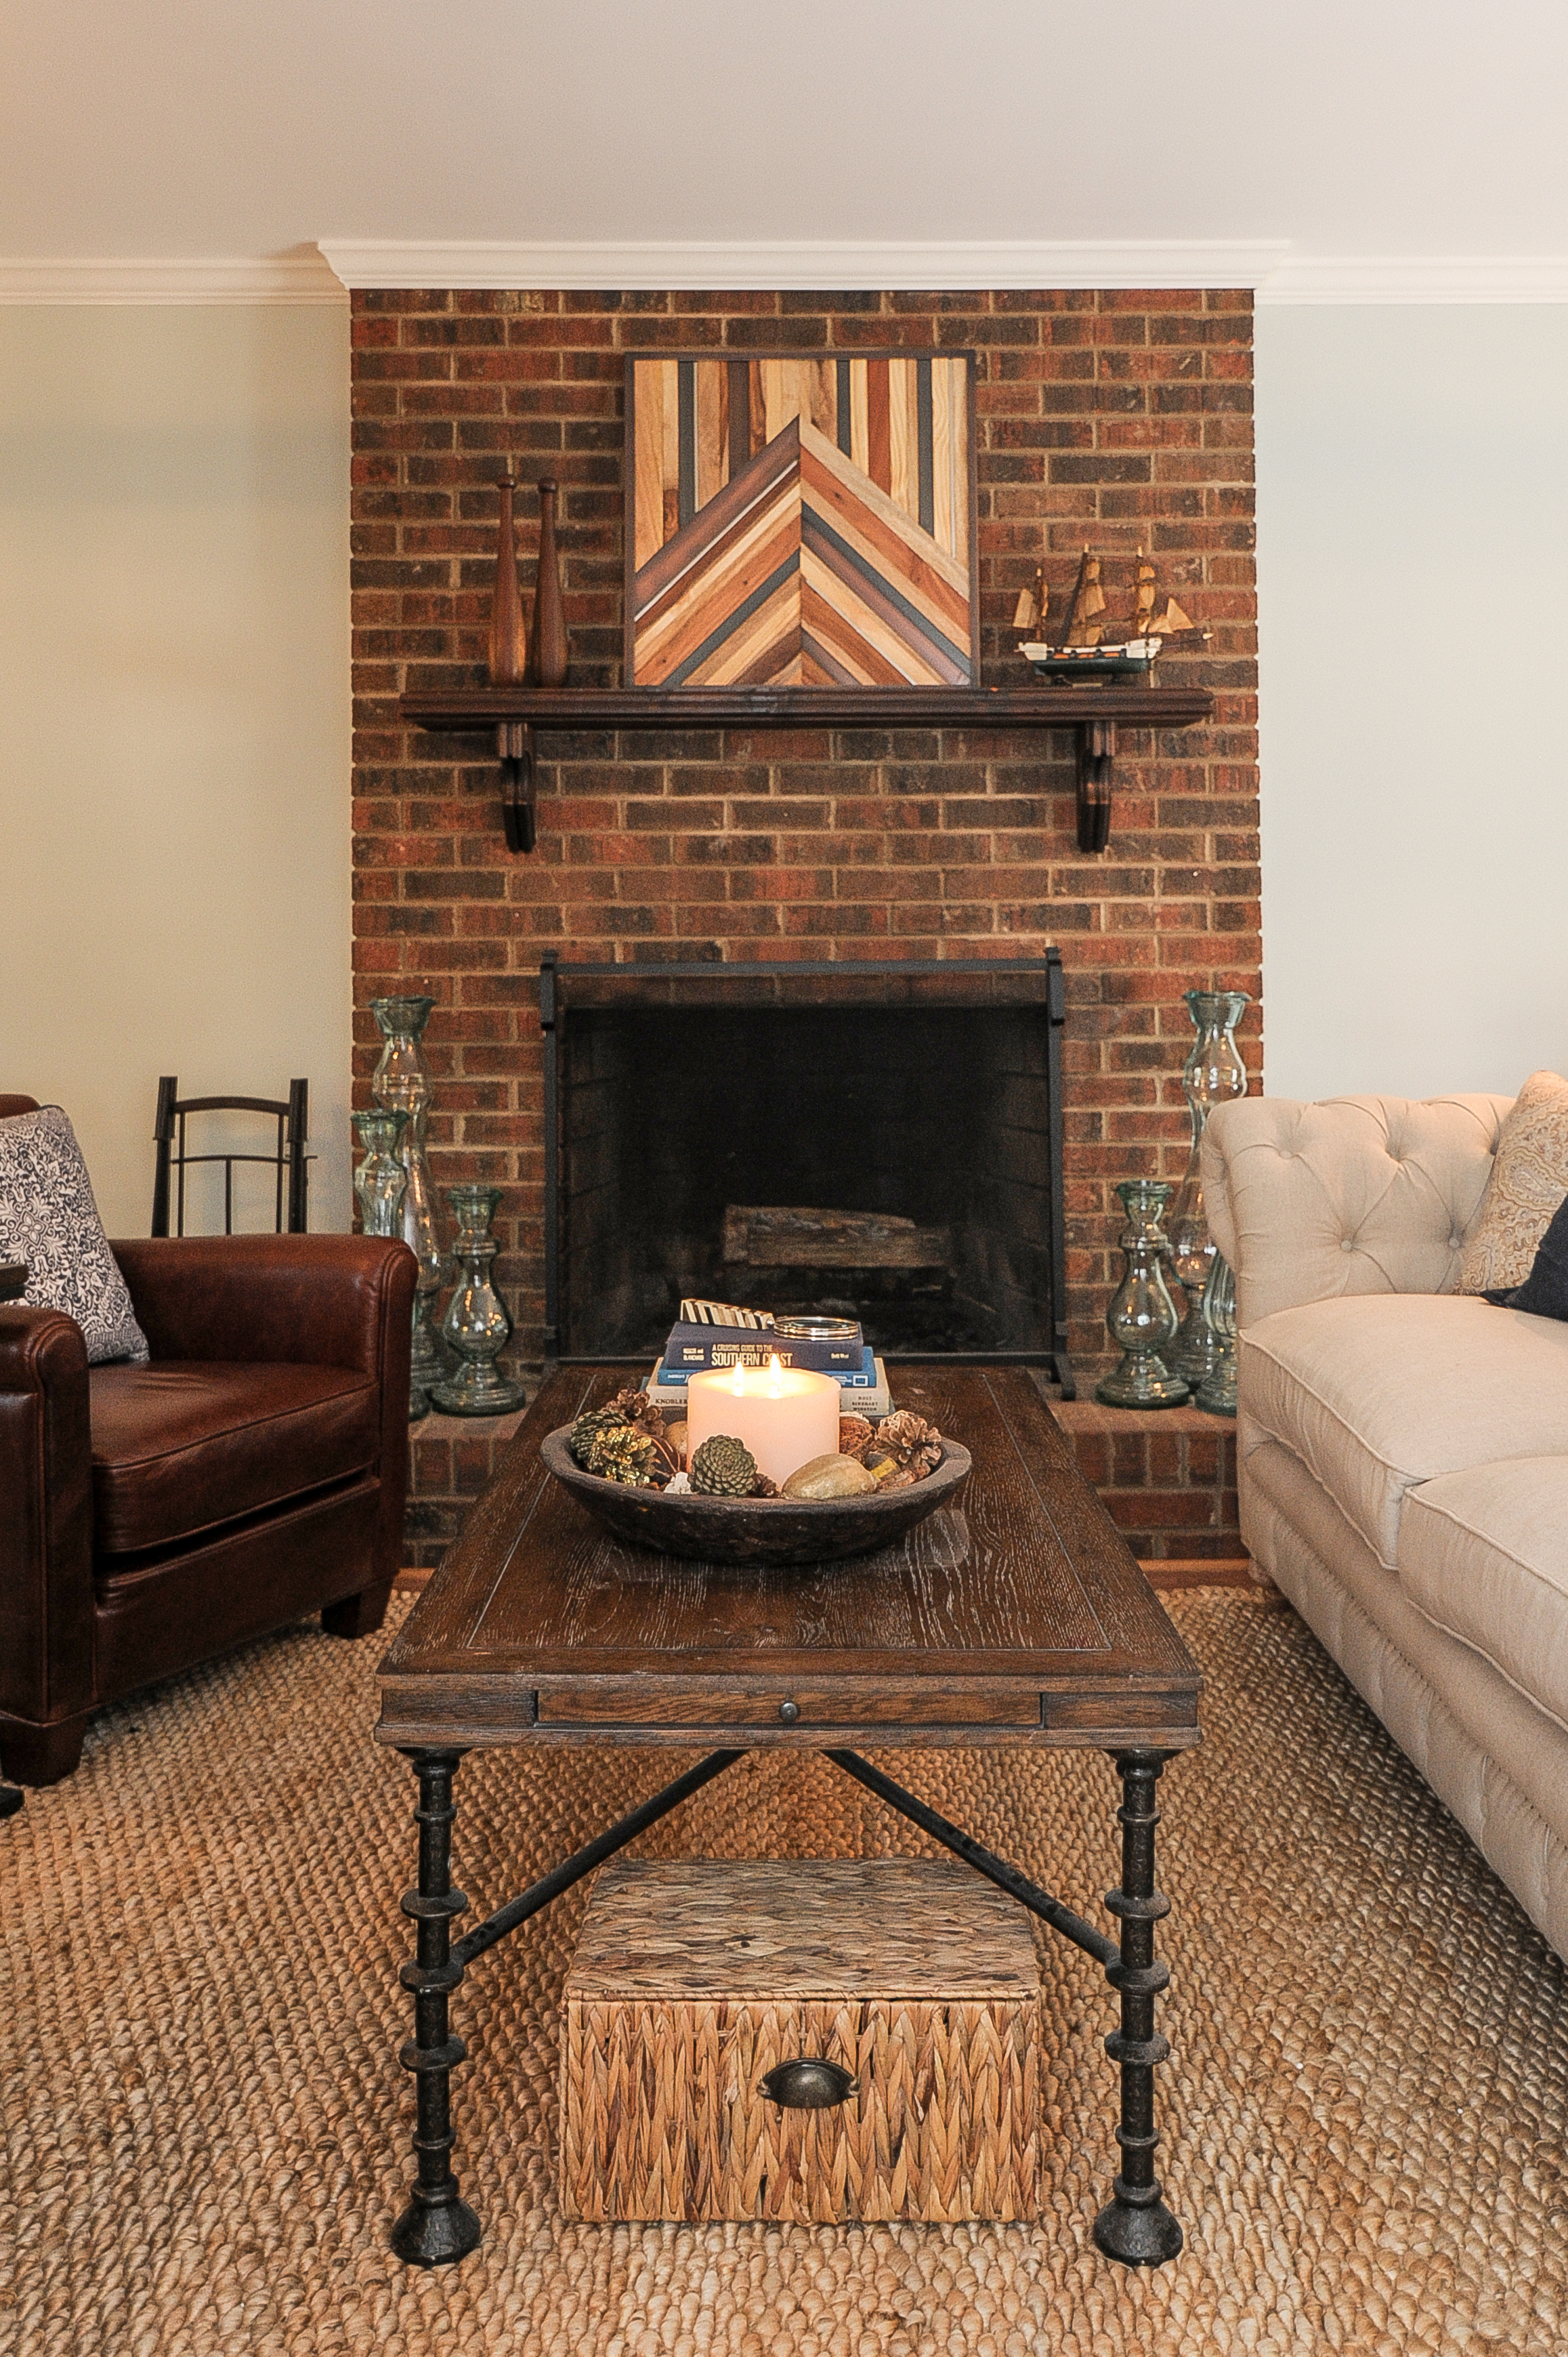 Artful Interiors – Bachelor Pad - Living Room Fireplace